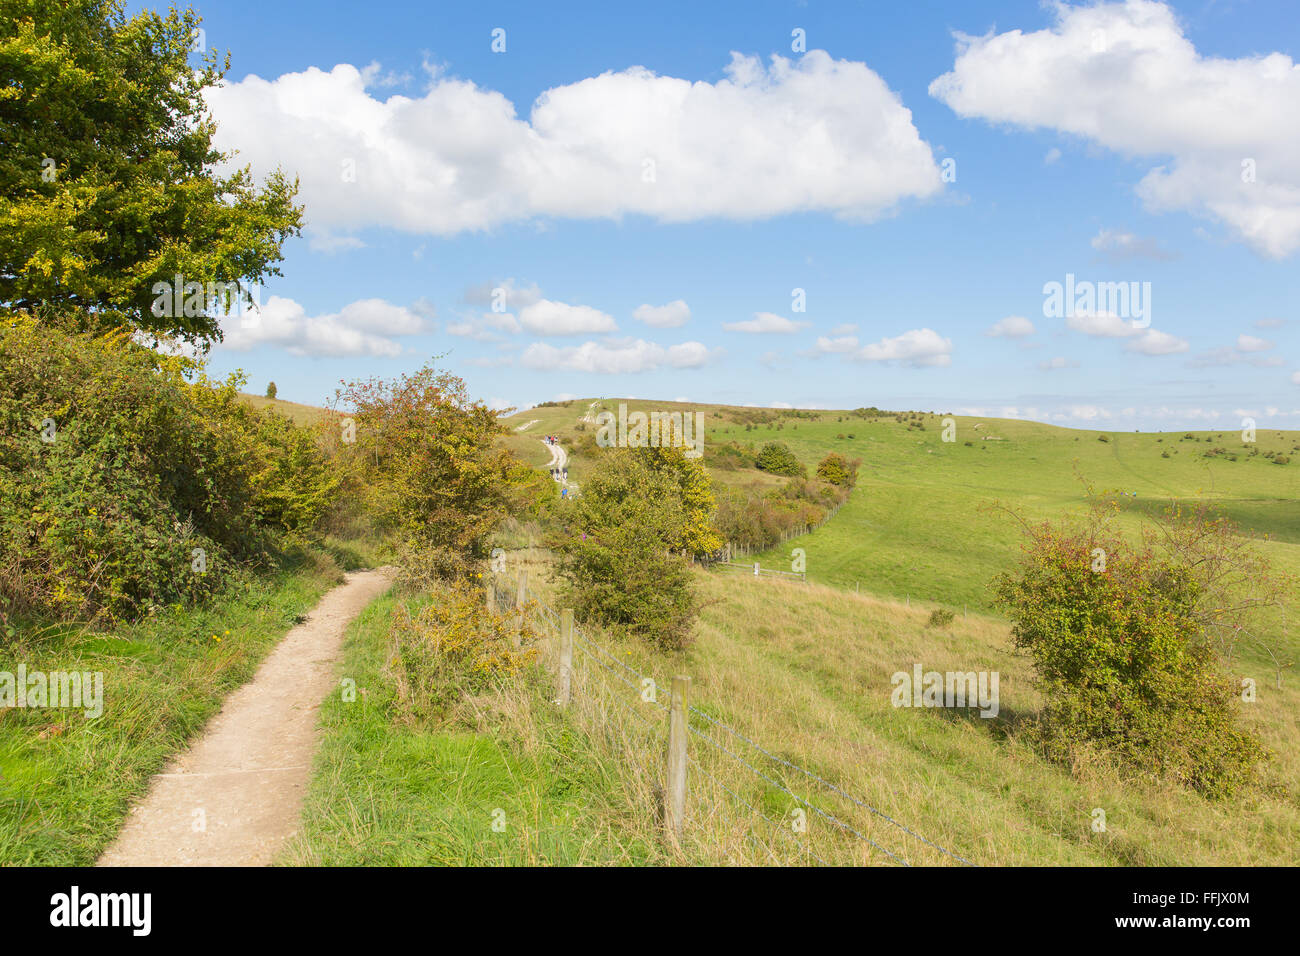 Path to Ivinghoe Beacon Chiltern Hills Buckinghamshire England UK English countryside blue sky and clouds - Stock Image